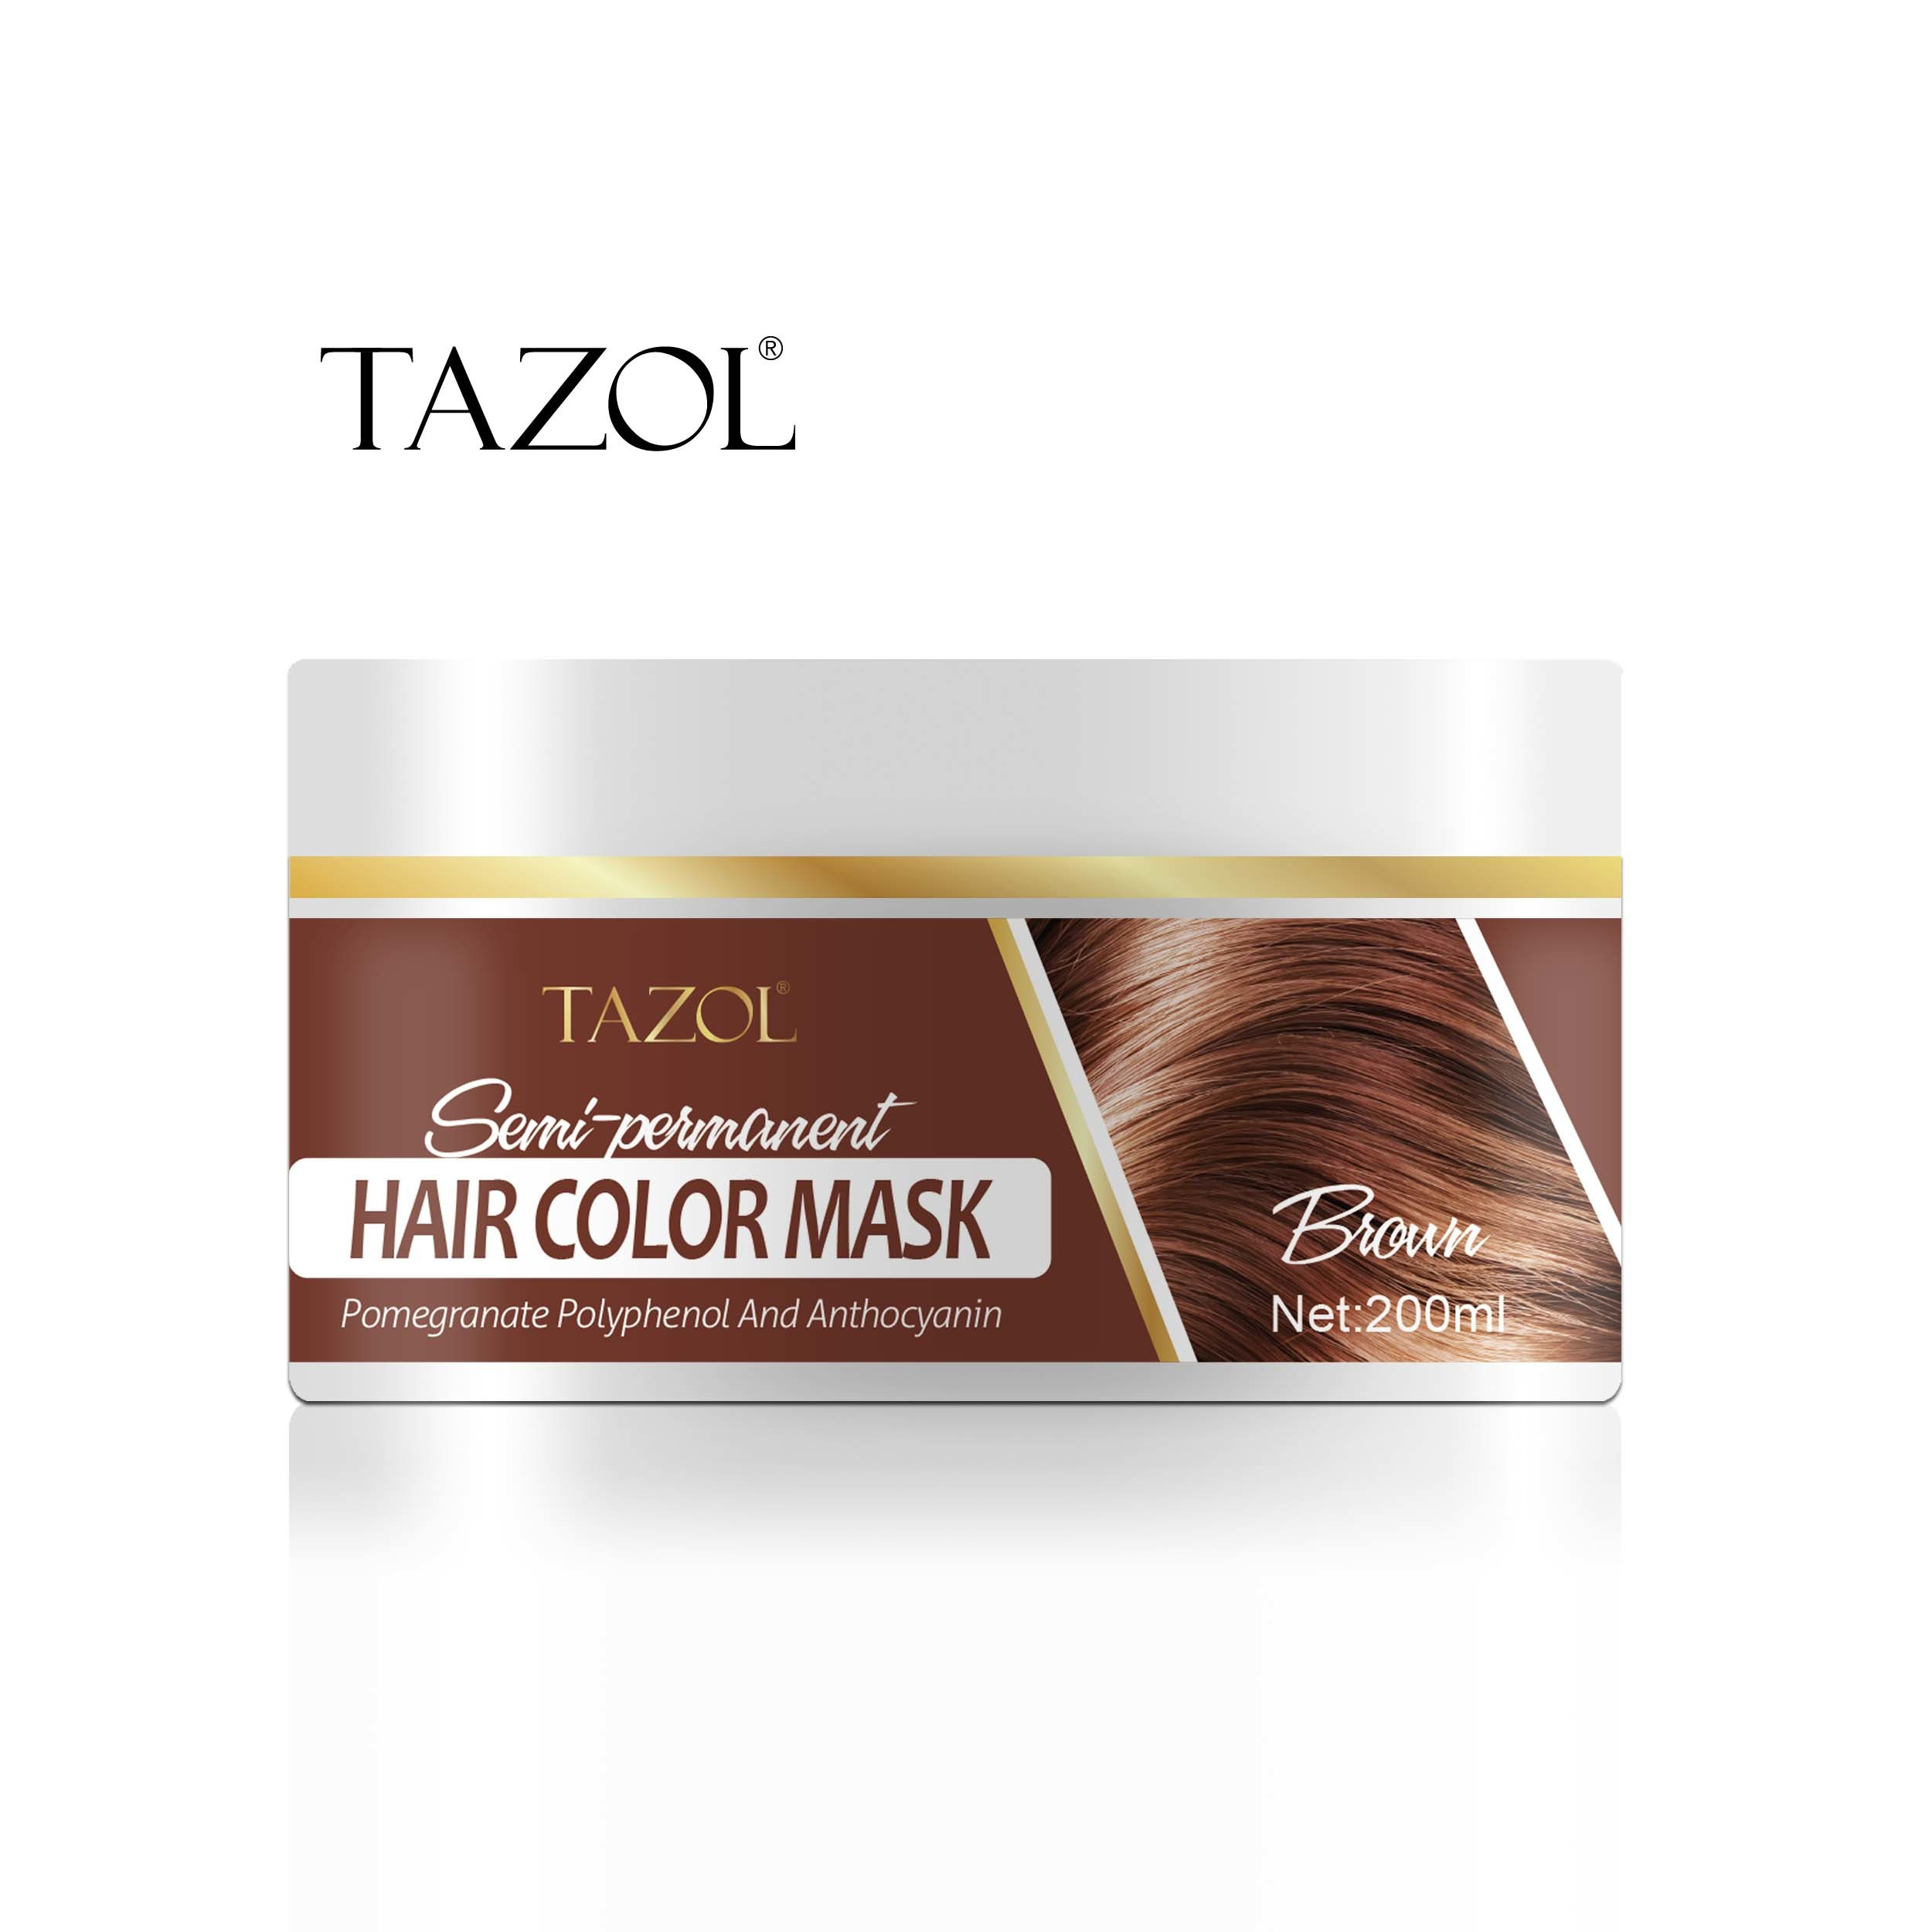 Tazol Semi-Permanant Hair Color Mask 200g with Dark Brown Color